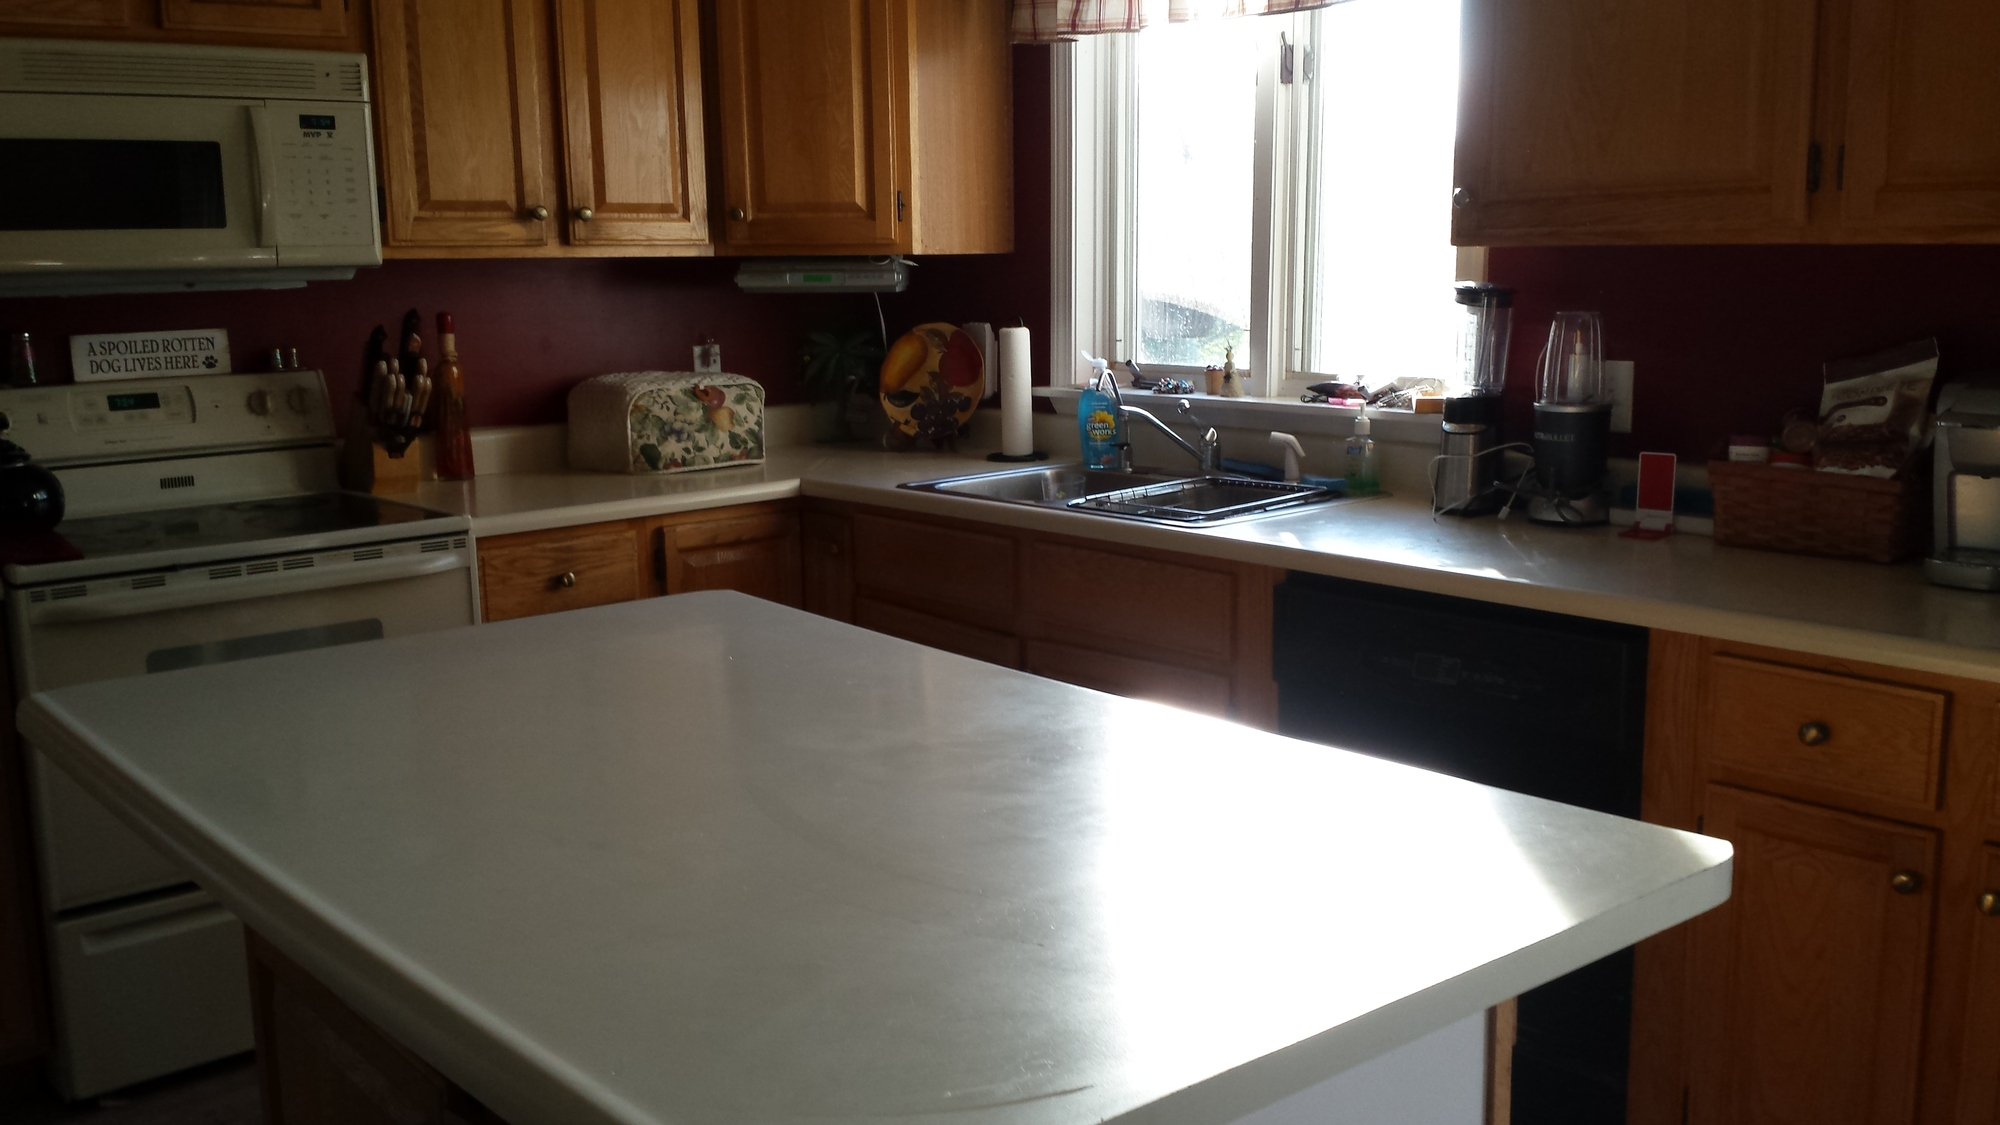 - Rumford Stone Granite Countertop Makeover Contest